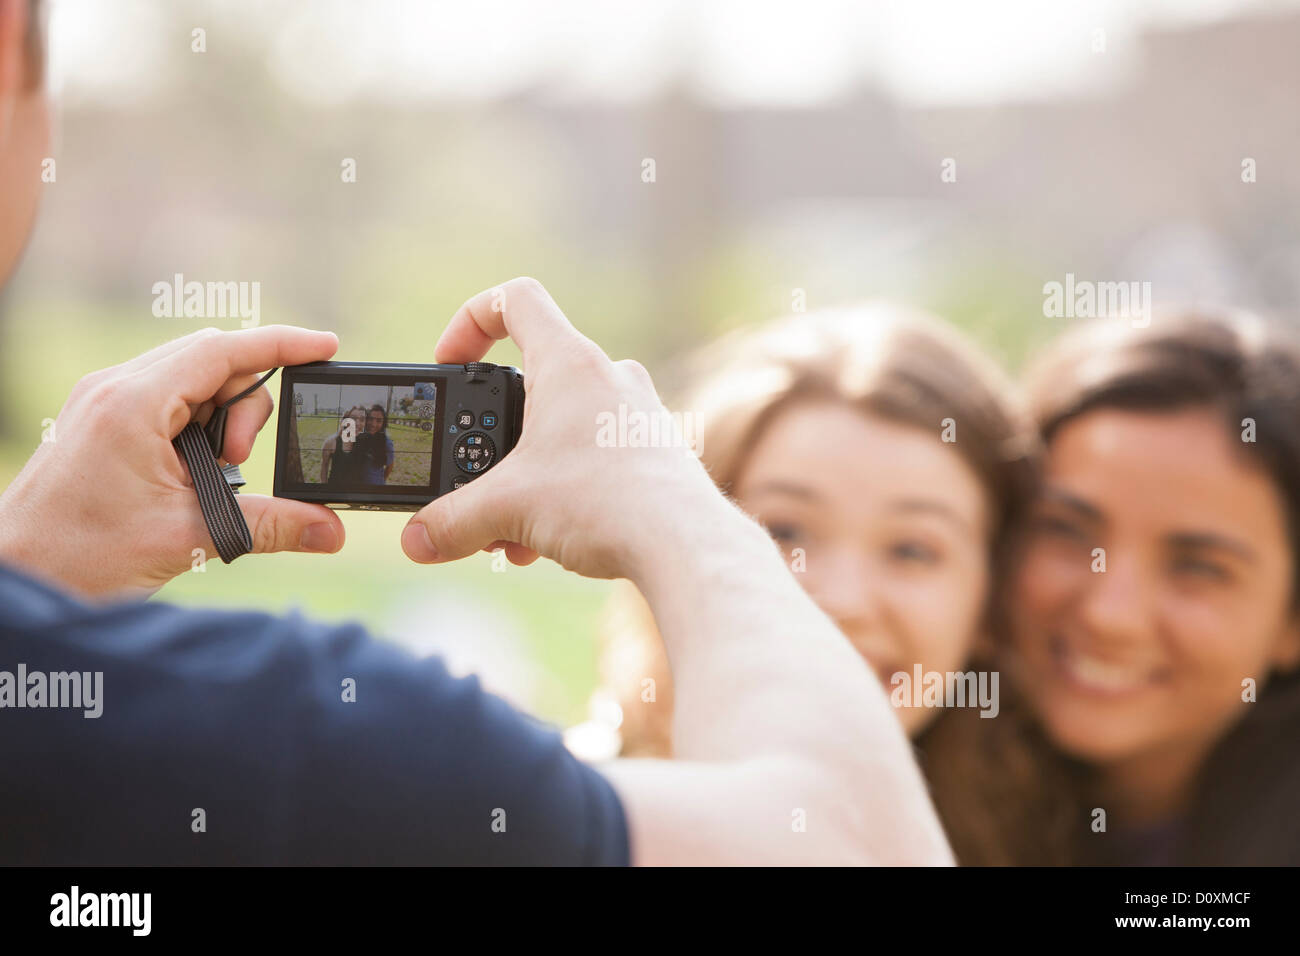 Man taking a photograph of two young women - Stock Image